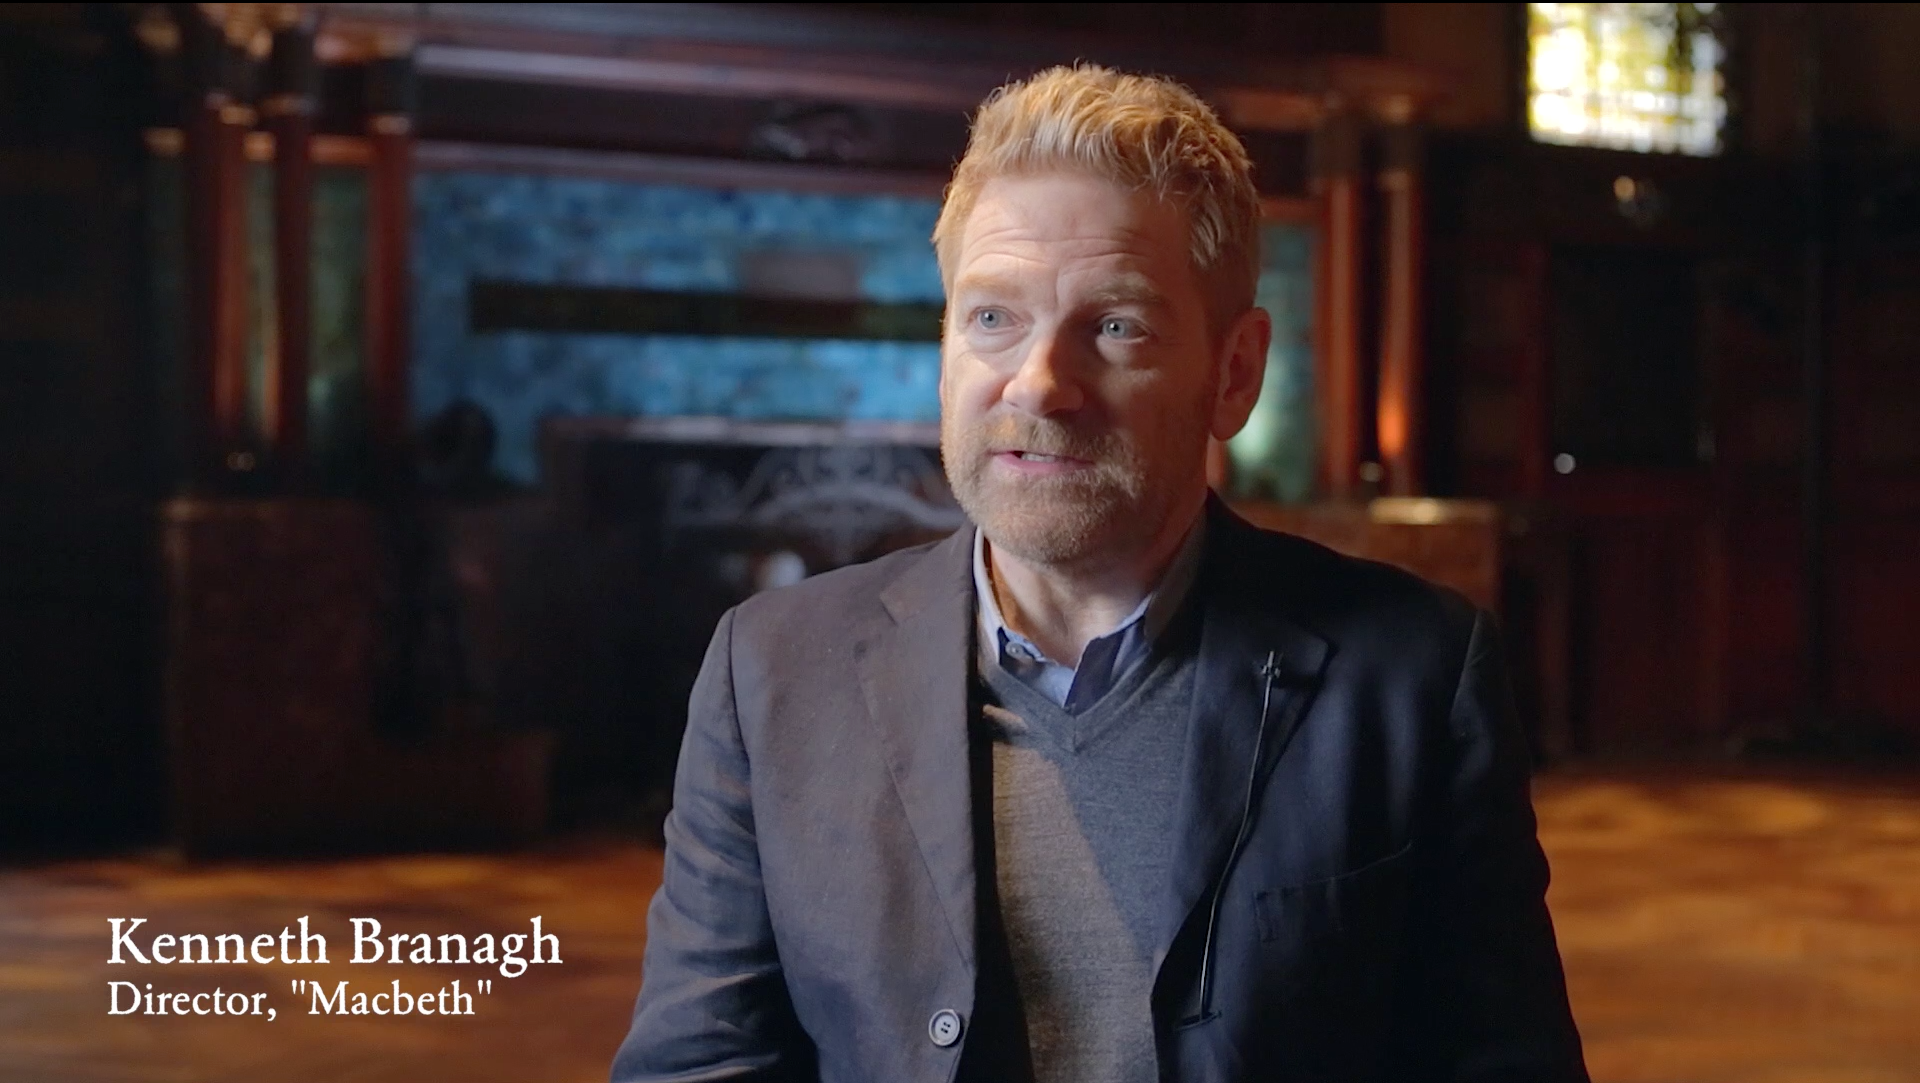 PAA_Branagh_2.png